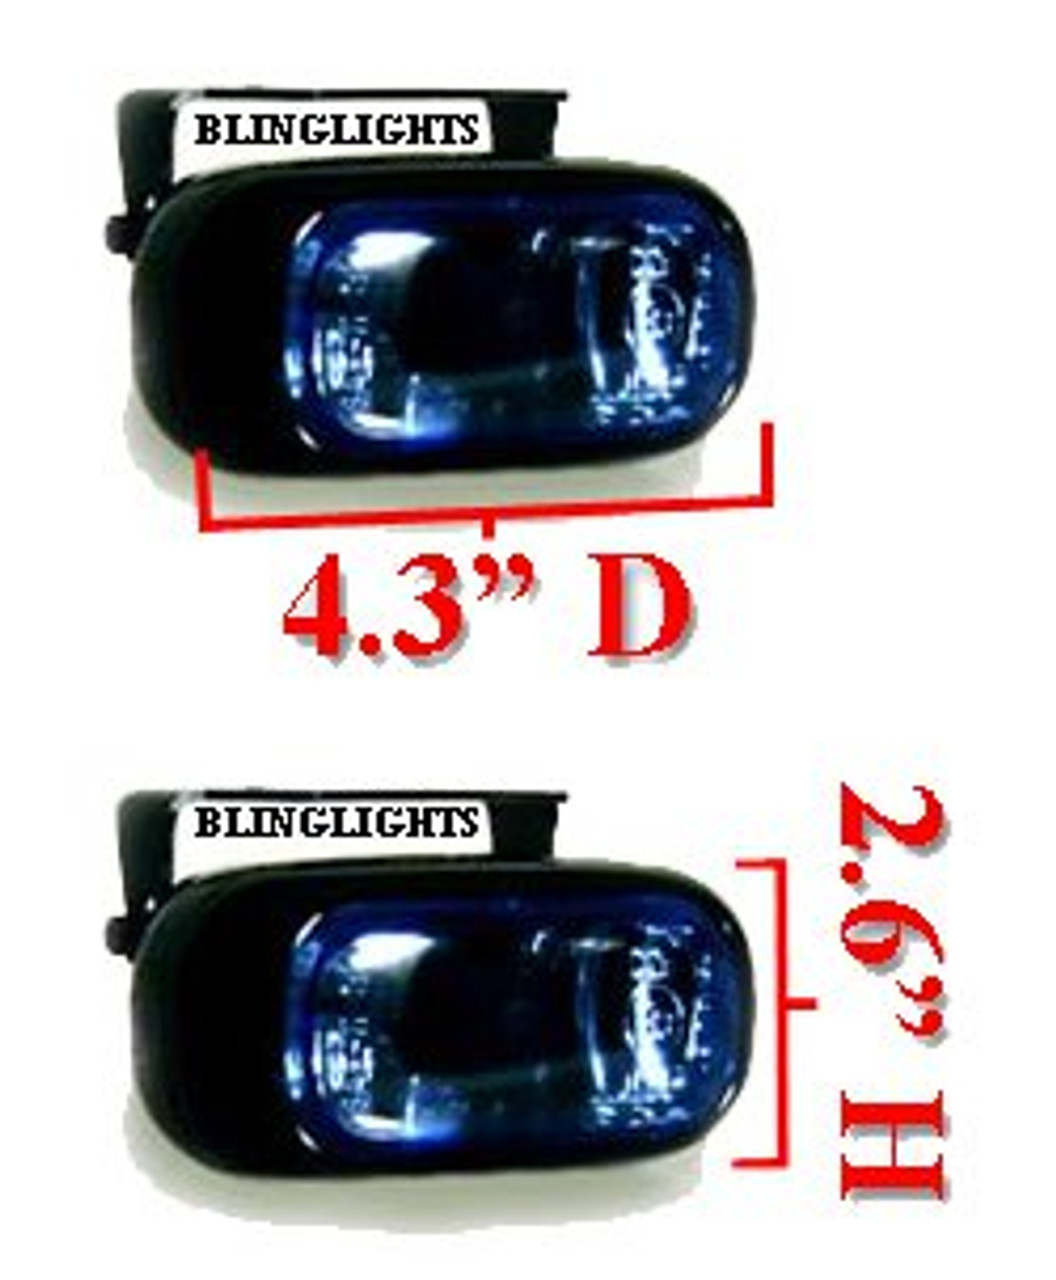 1992 1993 1994 1995 1996 1997 Toyota Corolla se ltd Xenon Fog Lamps Driving Lights Foglamp Foglight